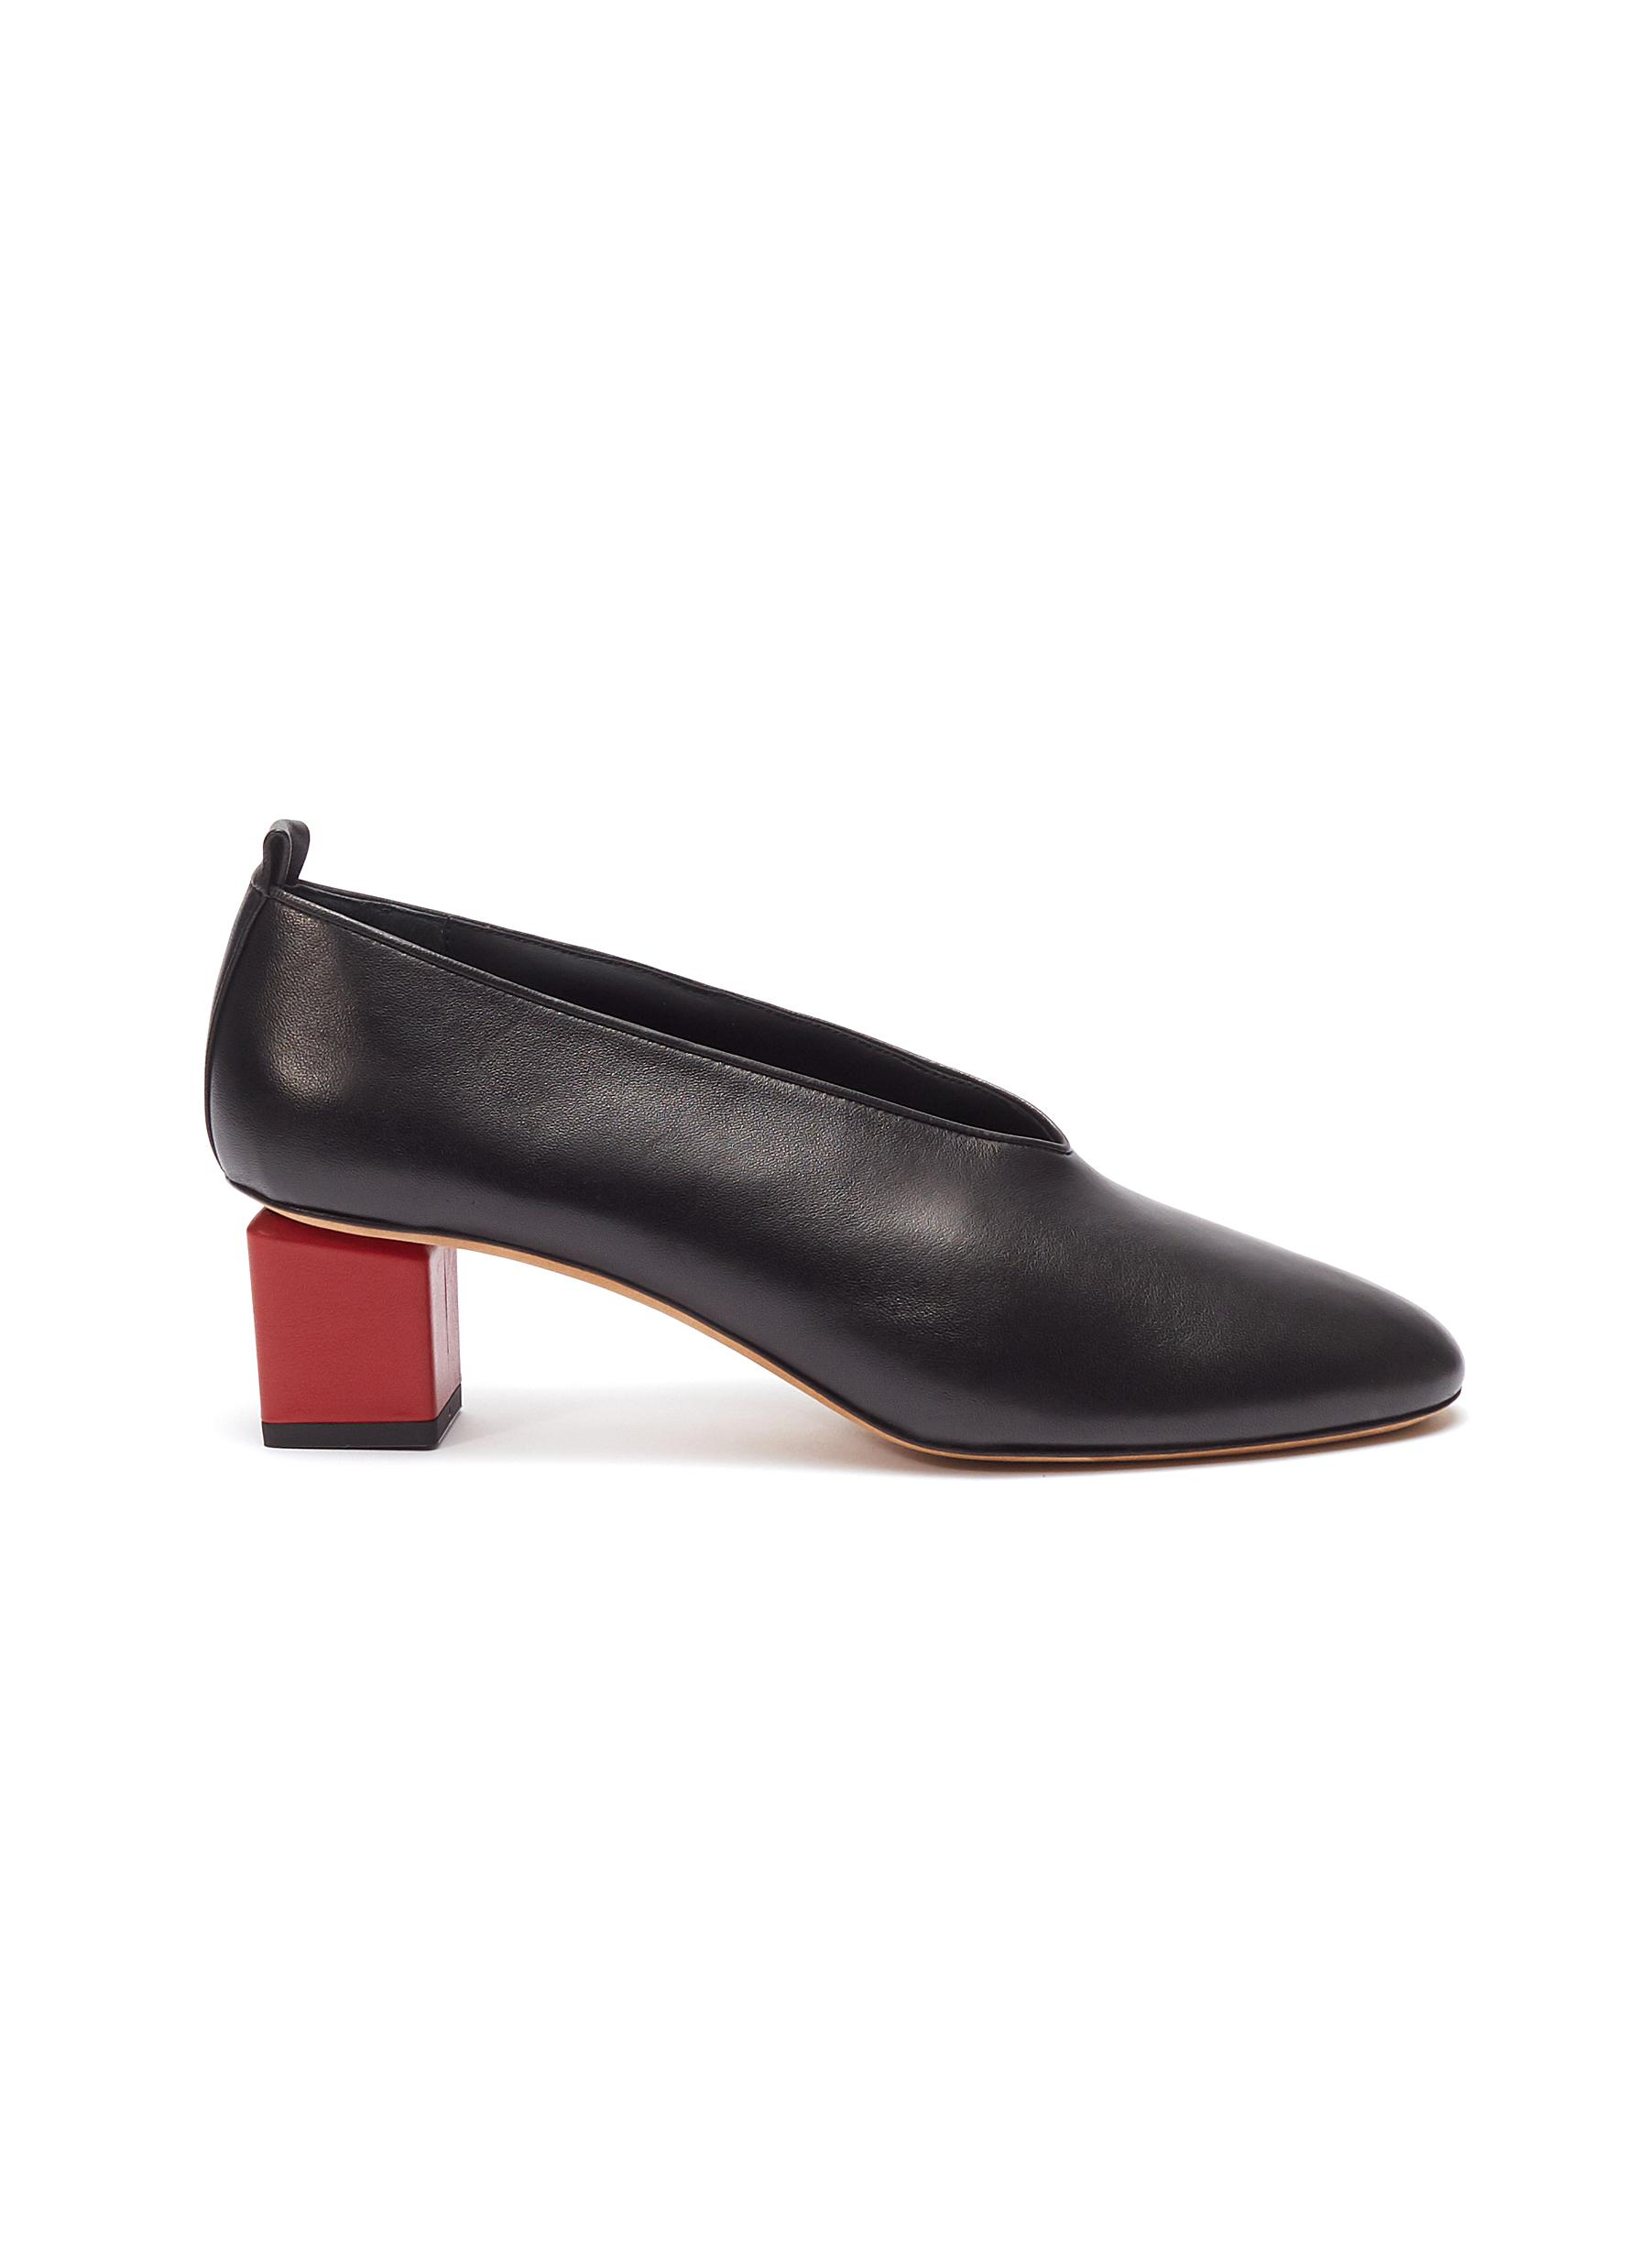 Mildred' geometric heel choked-up leather pumps